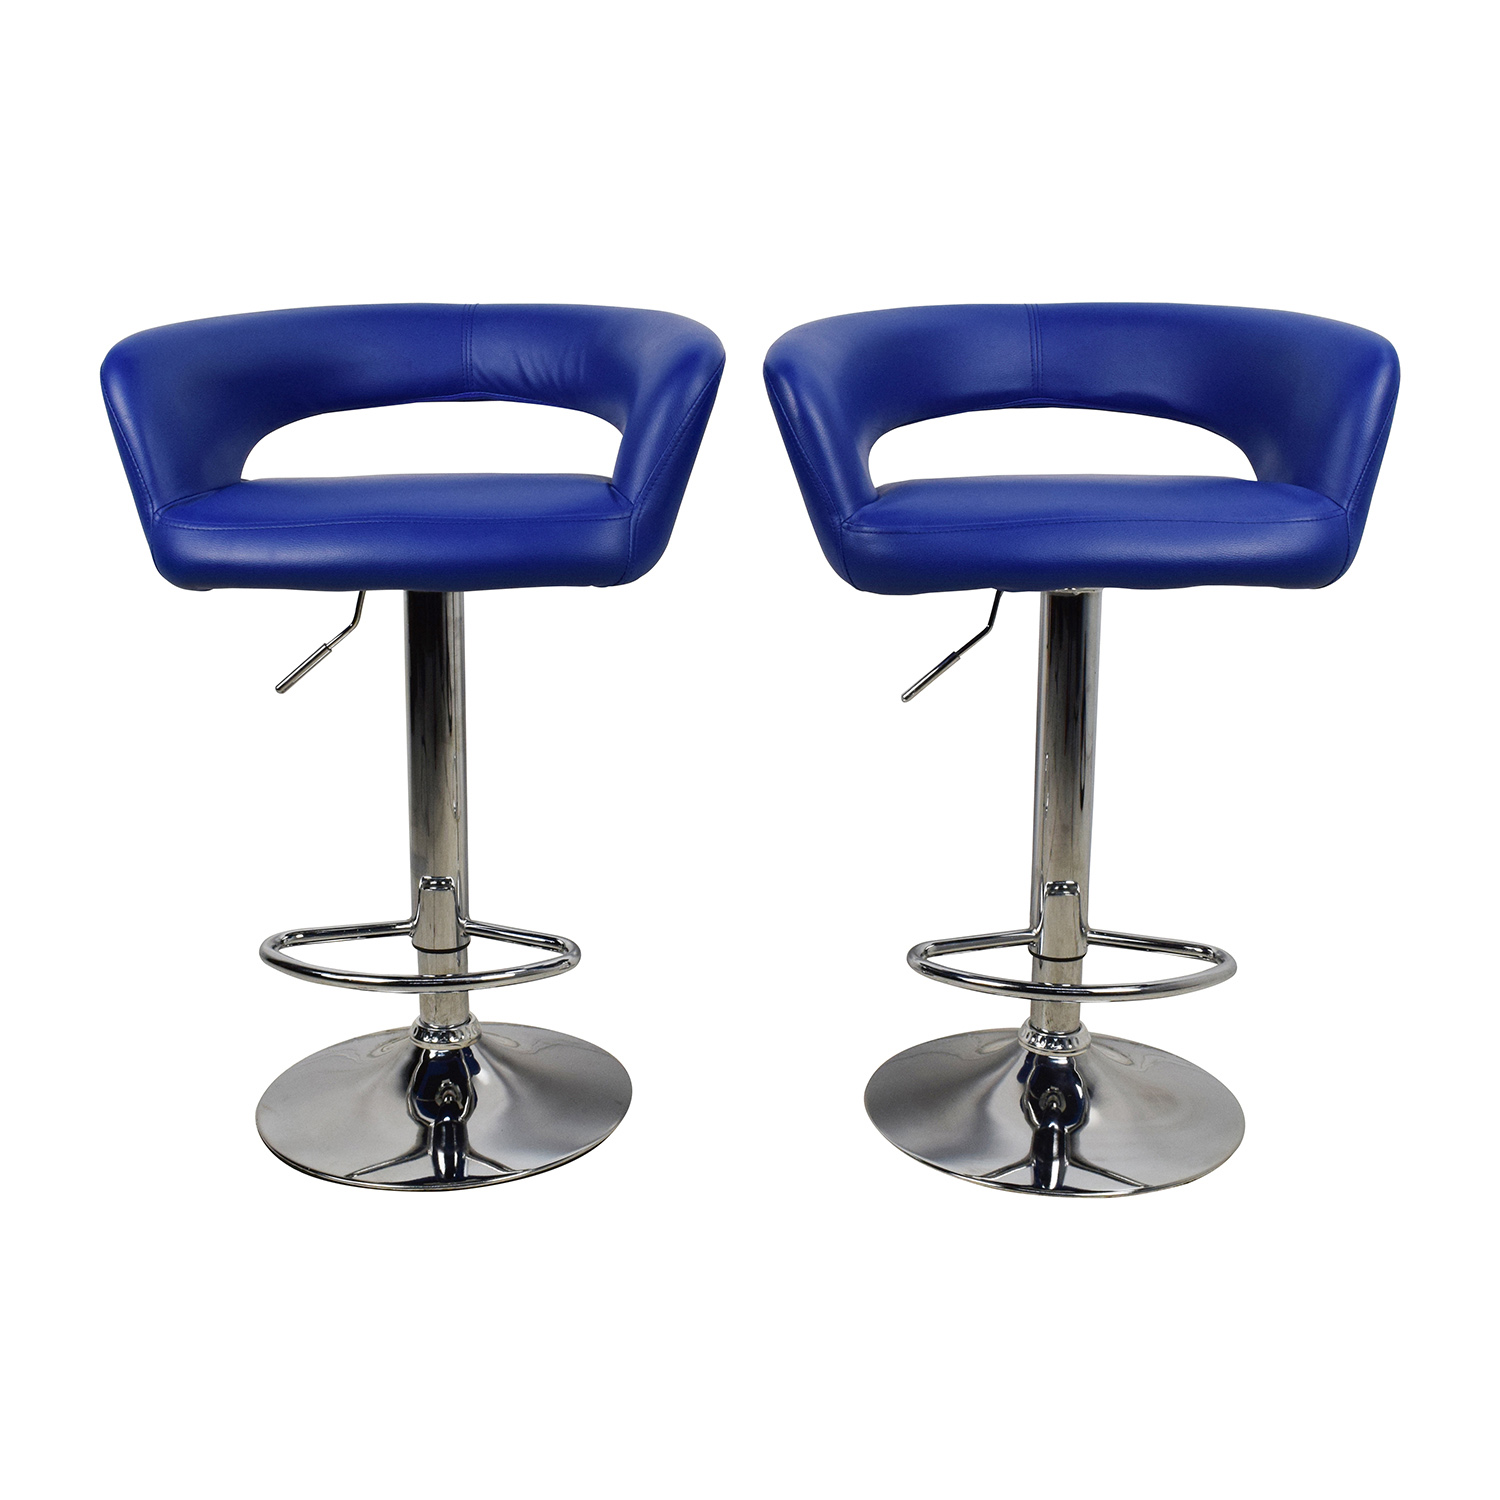 All Modern Blue Leather Adjustable Height Swivel Bar Stools / Chairs ...